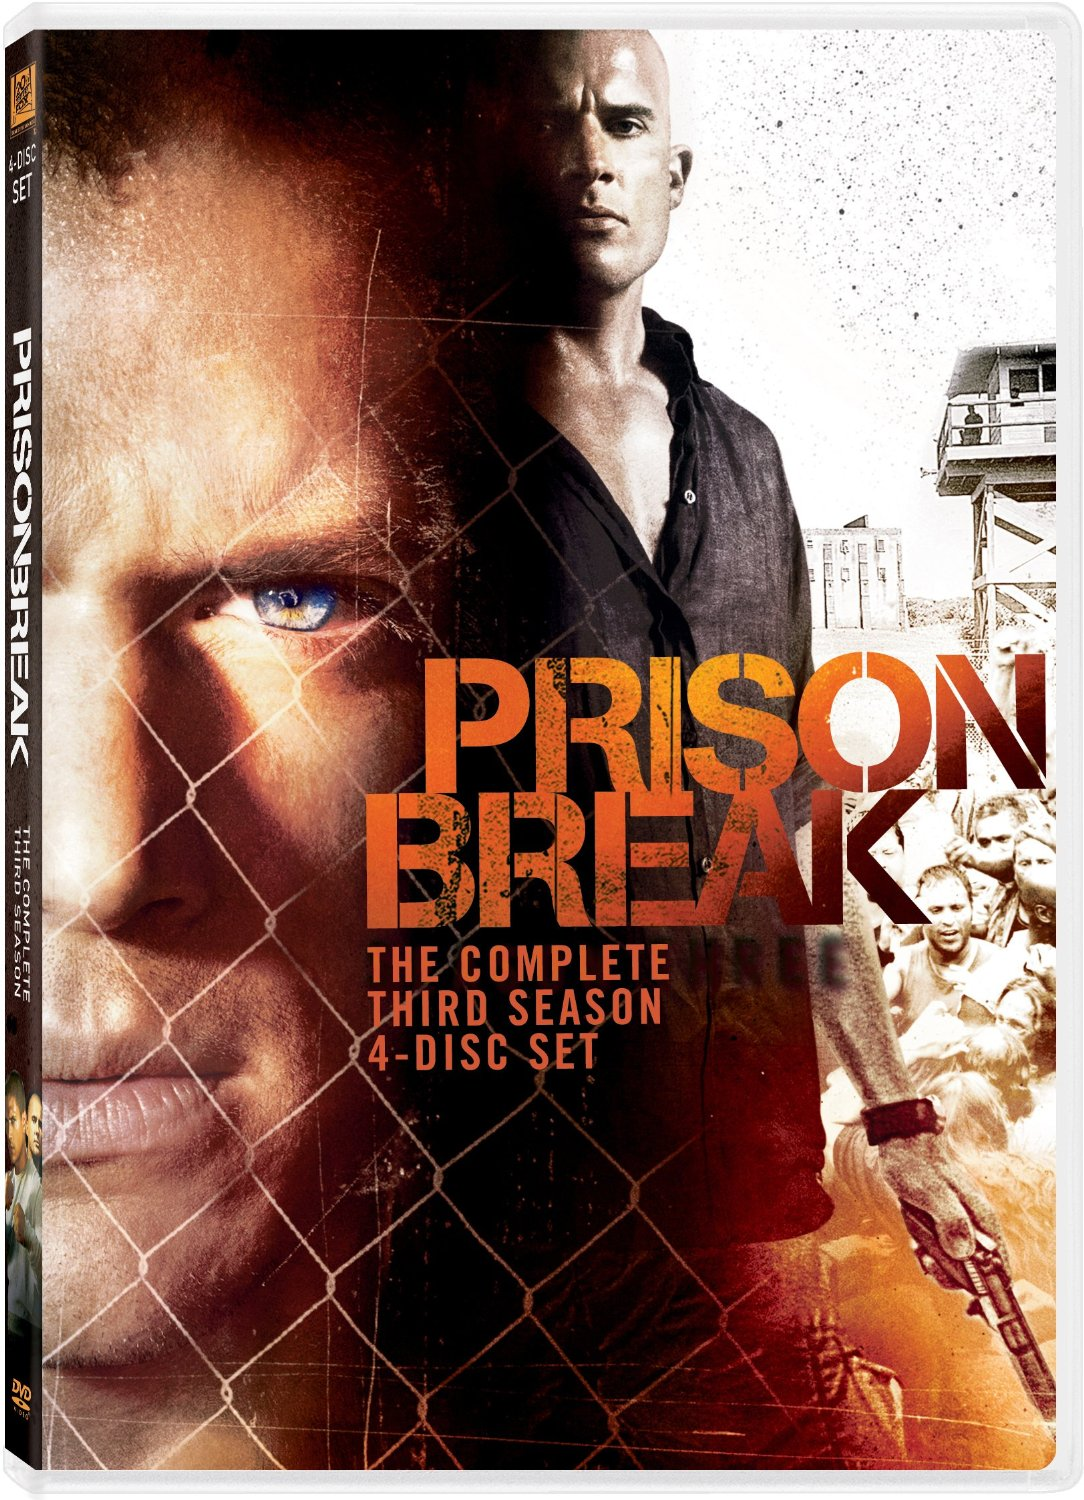 prison.break.s05e02.720p.mkvtv subtitles